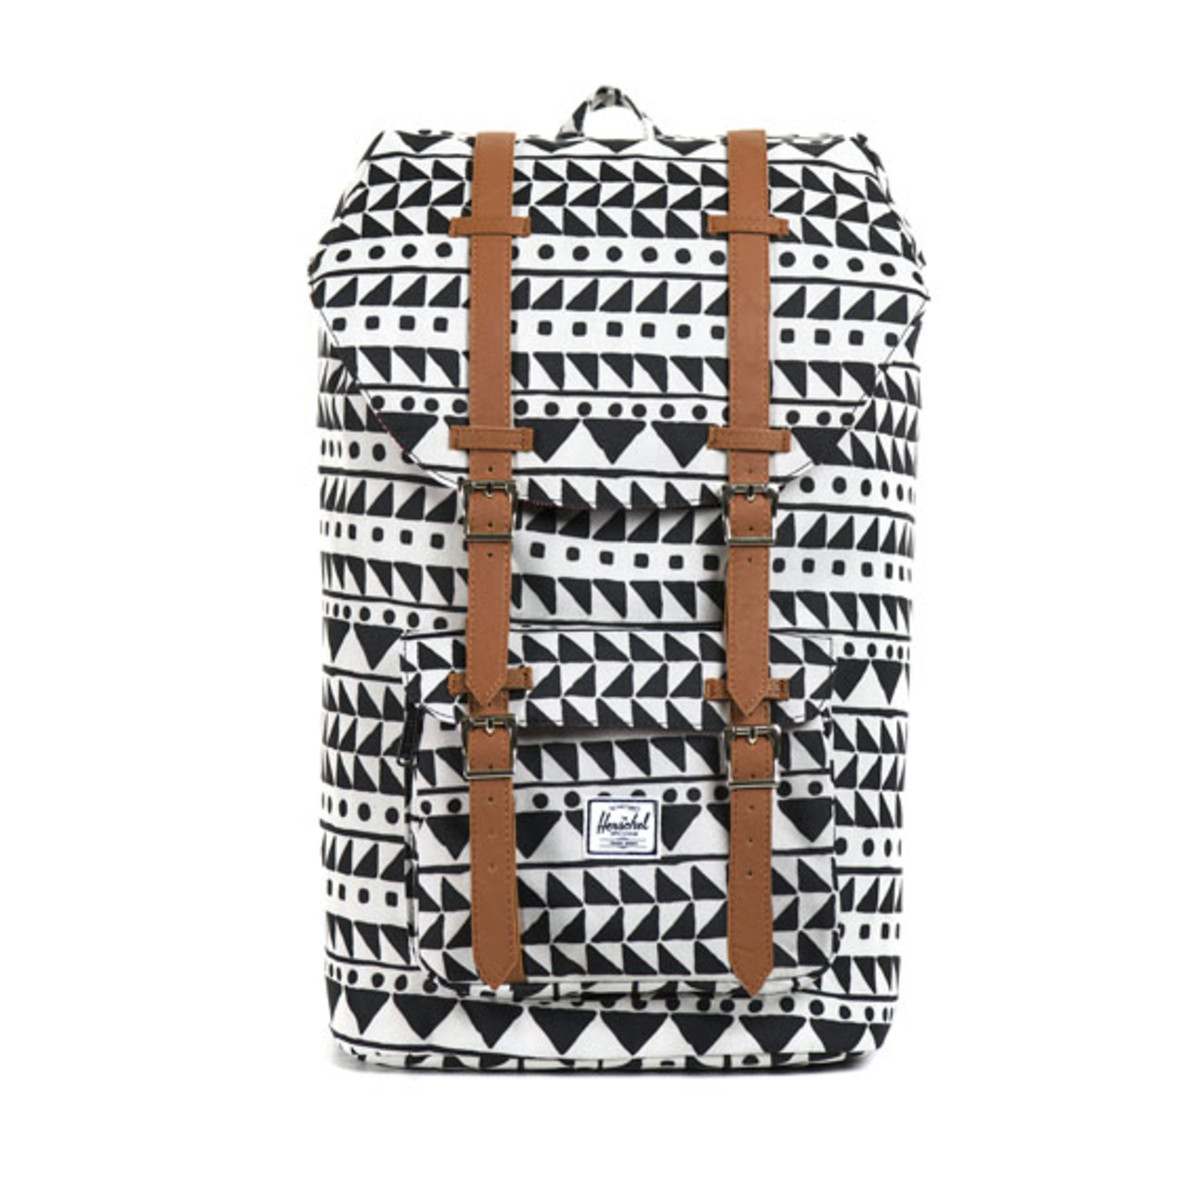 herschel-supply-co-fall-2013-classic-prints-05